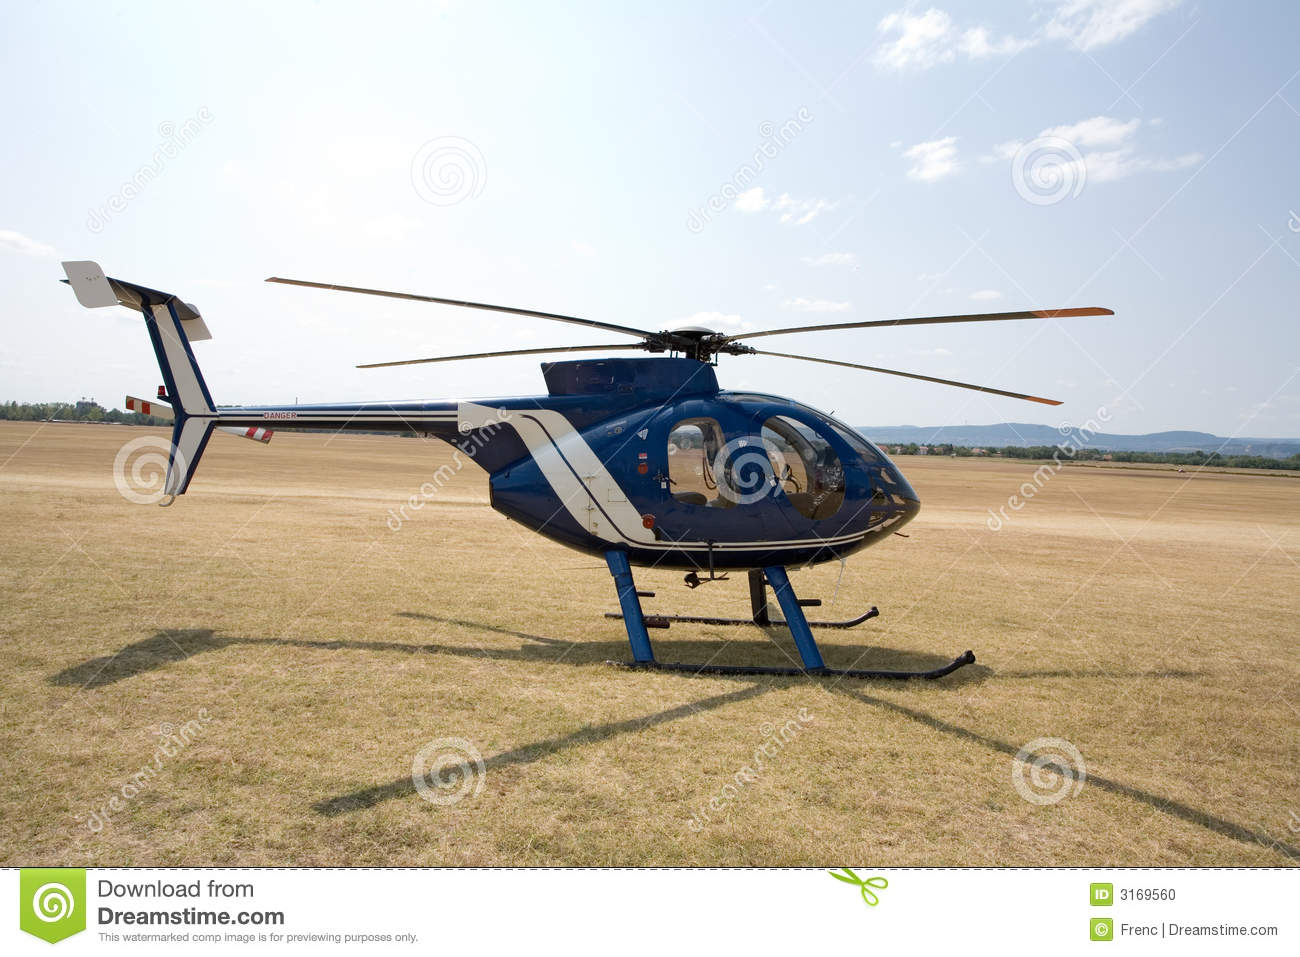 pilot license helicopter with Stock Photo Helicopter Ground Image3169560 on Watch besides File FAA ATPL moreover Watch besides Watch moreover Watch.